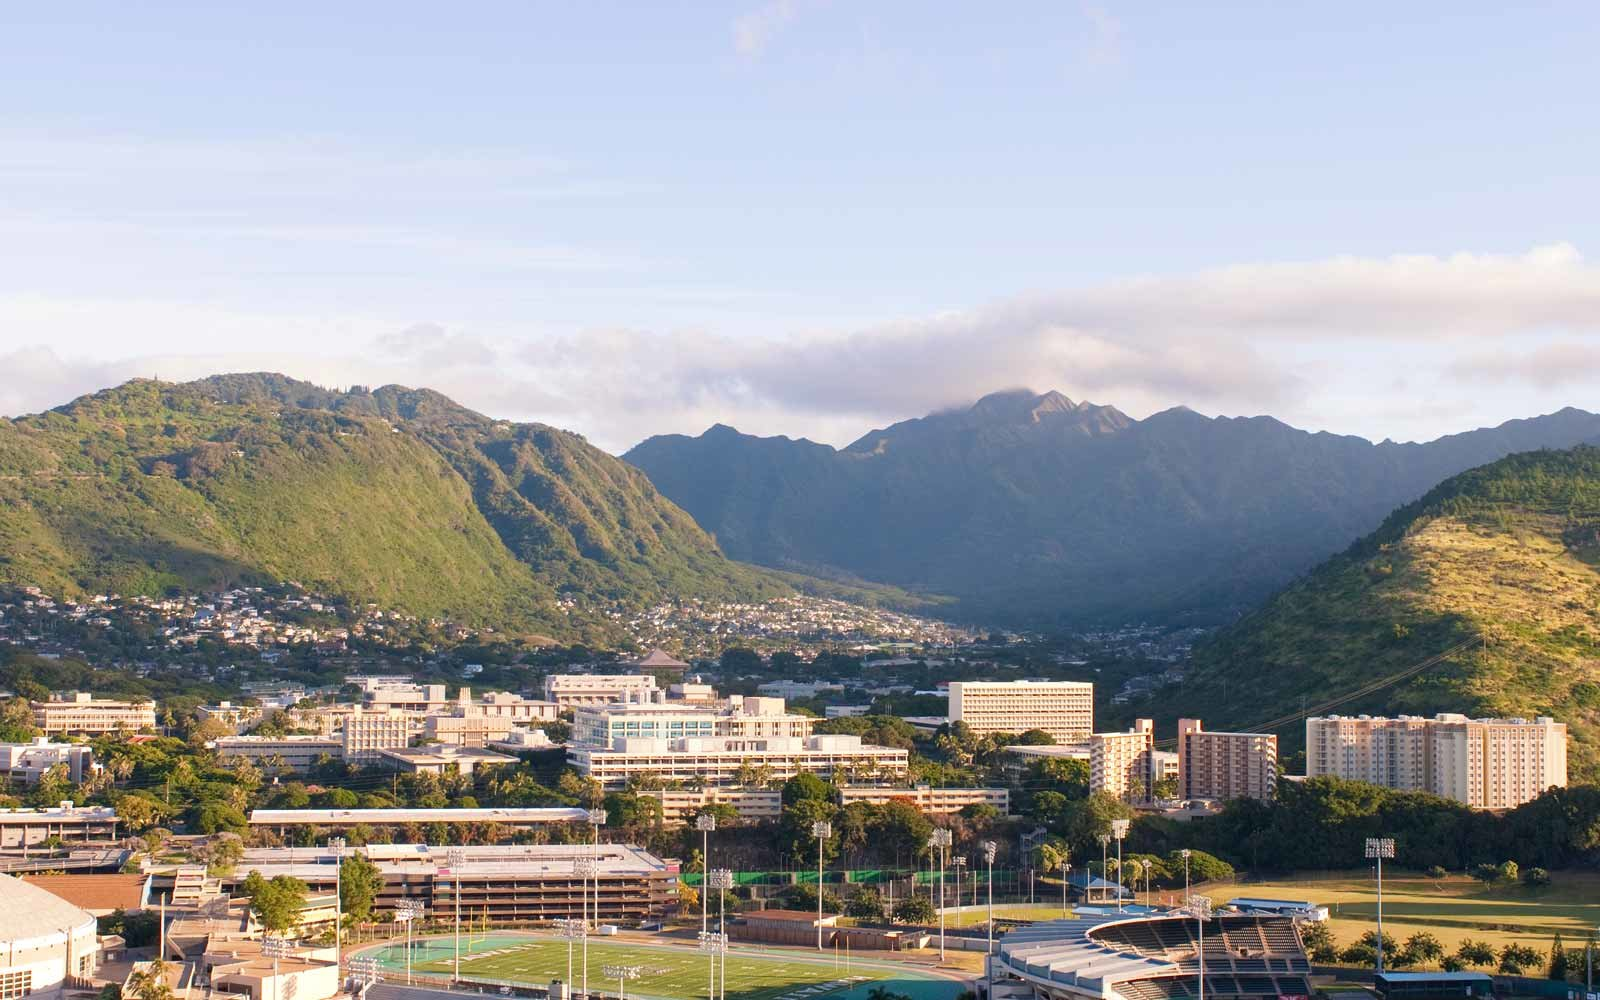 University of Hawaii at Mānoa